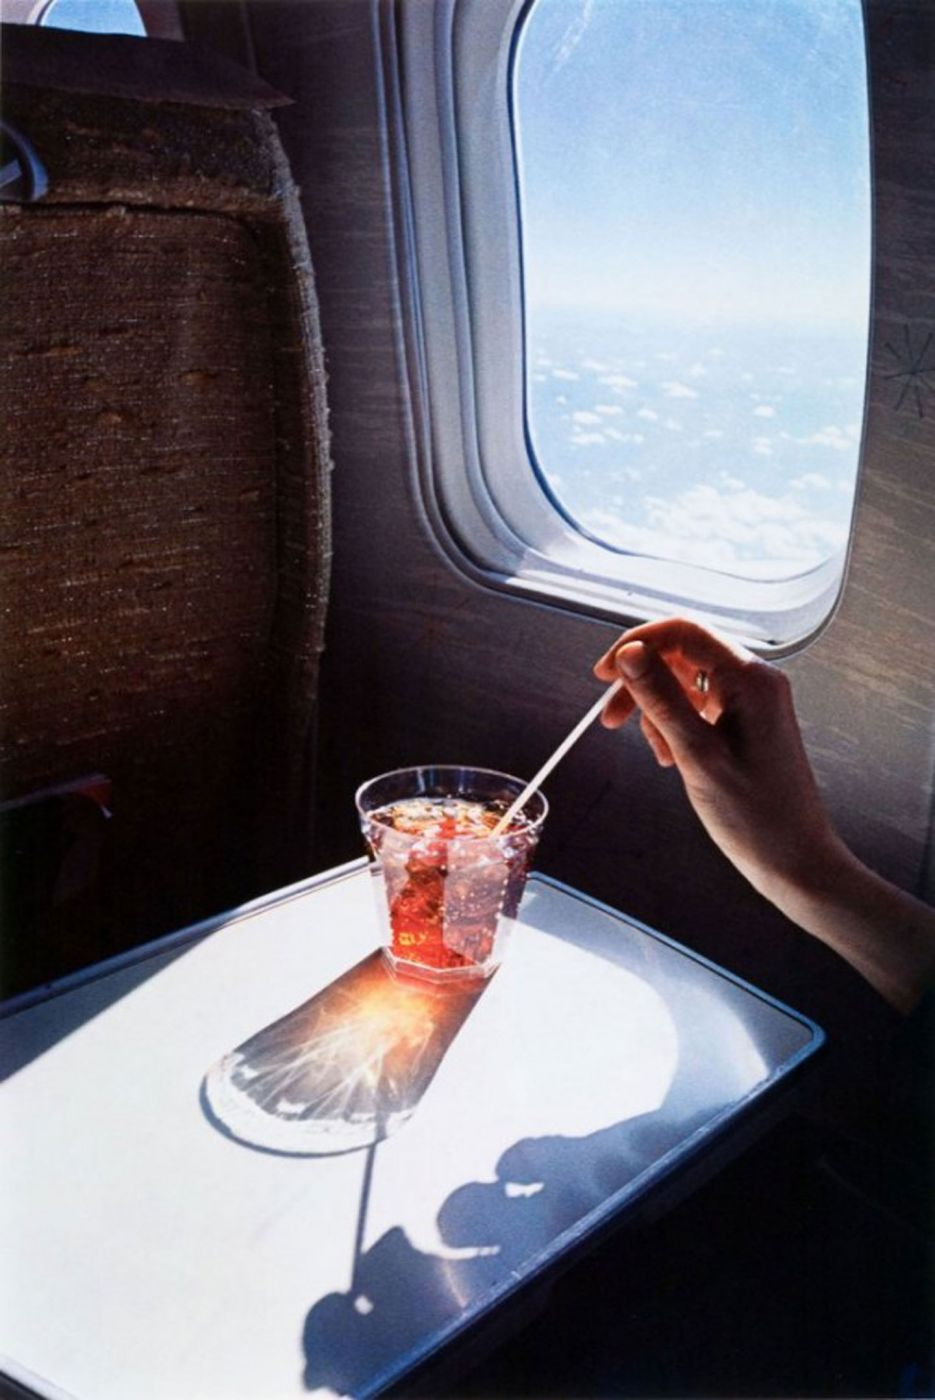 William_Eggleston_Photograph-25.jpg